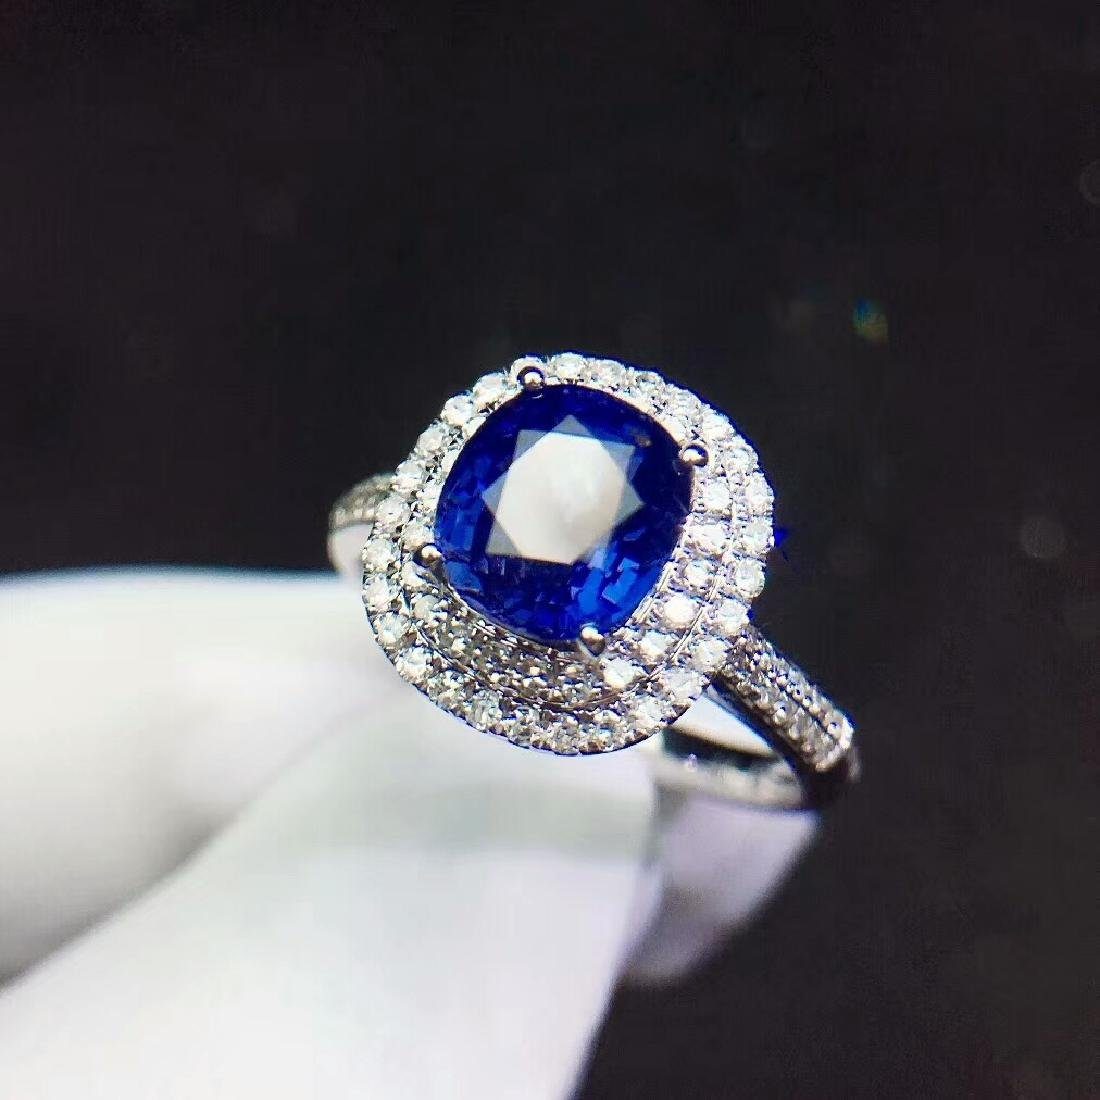 2.21ct Sapphire Ring in 18kt White Gold